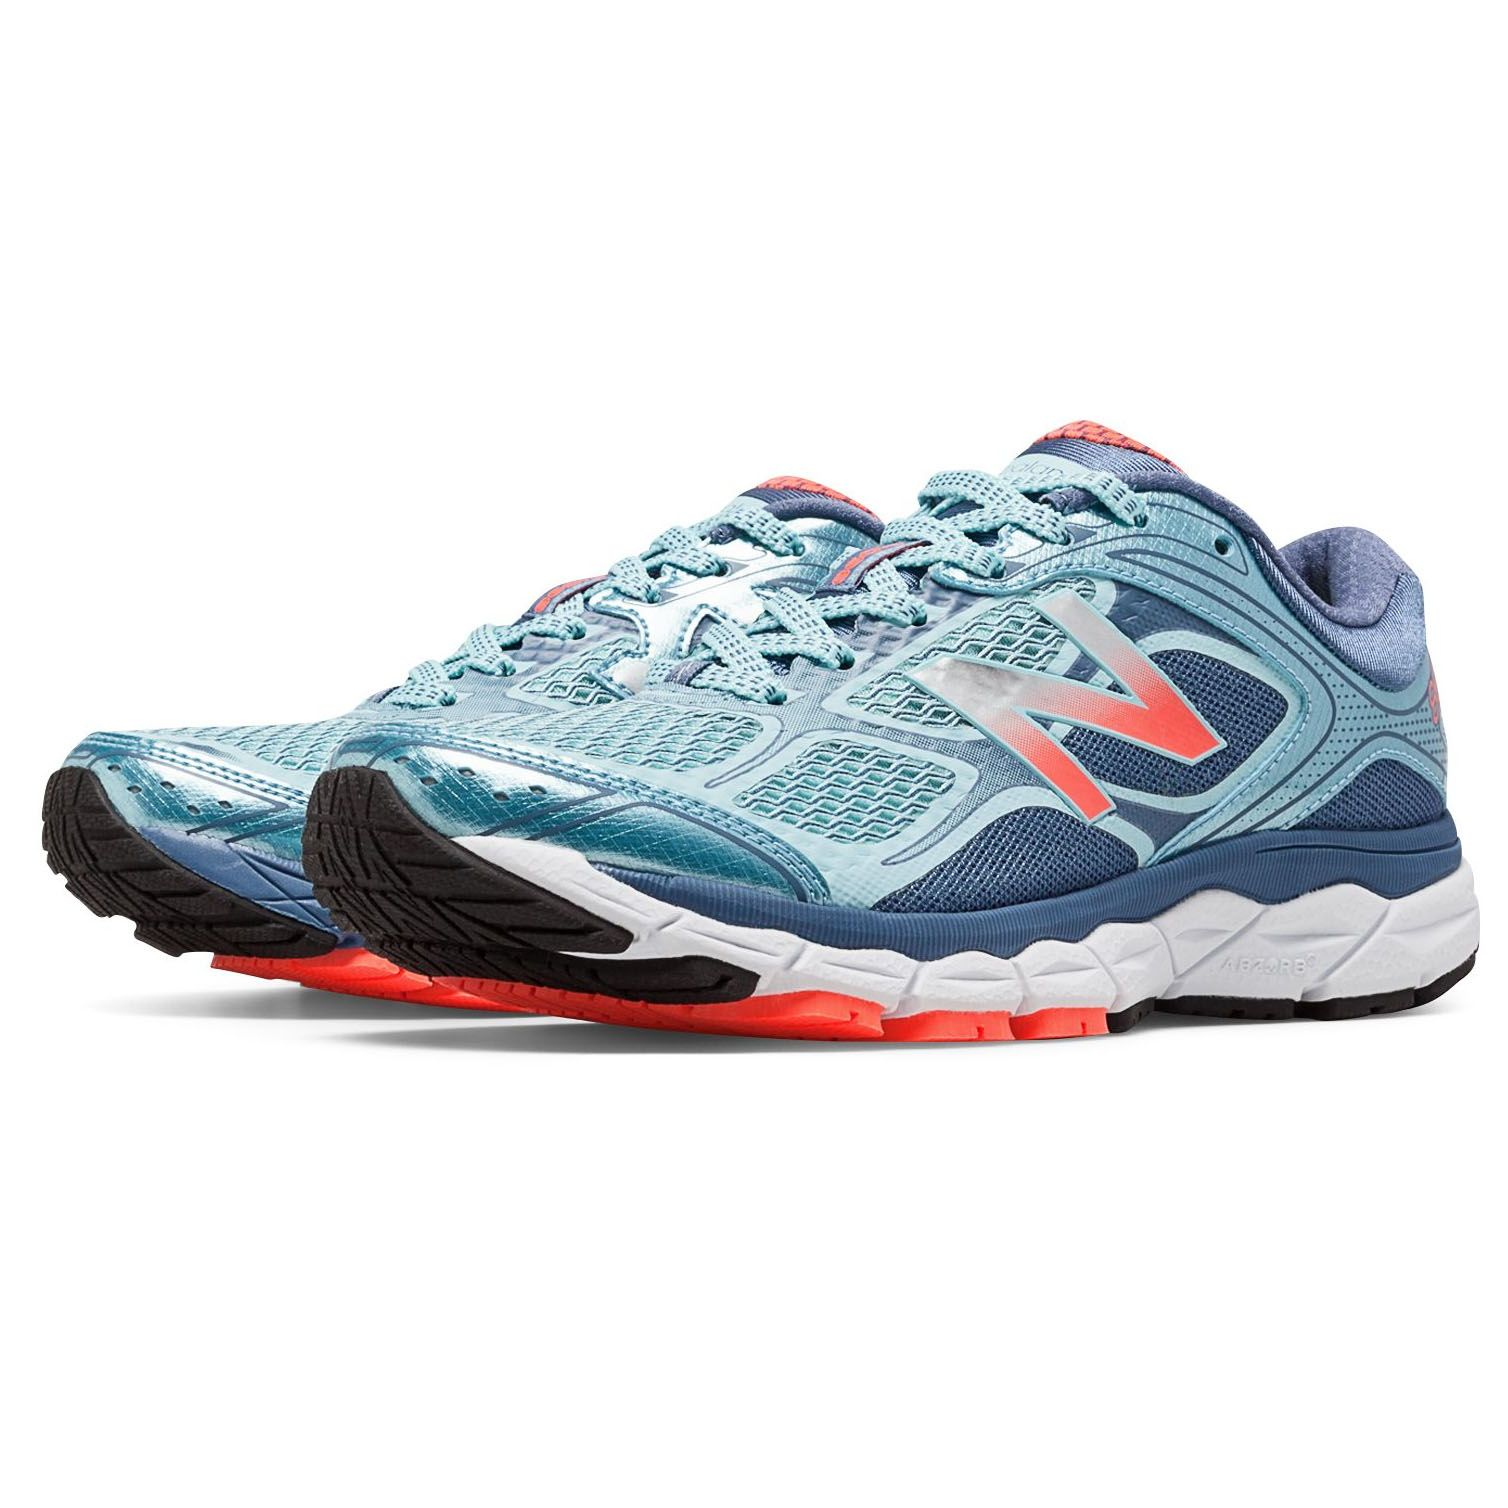 New Balance 860 V6 Ladies Running Shoes